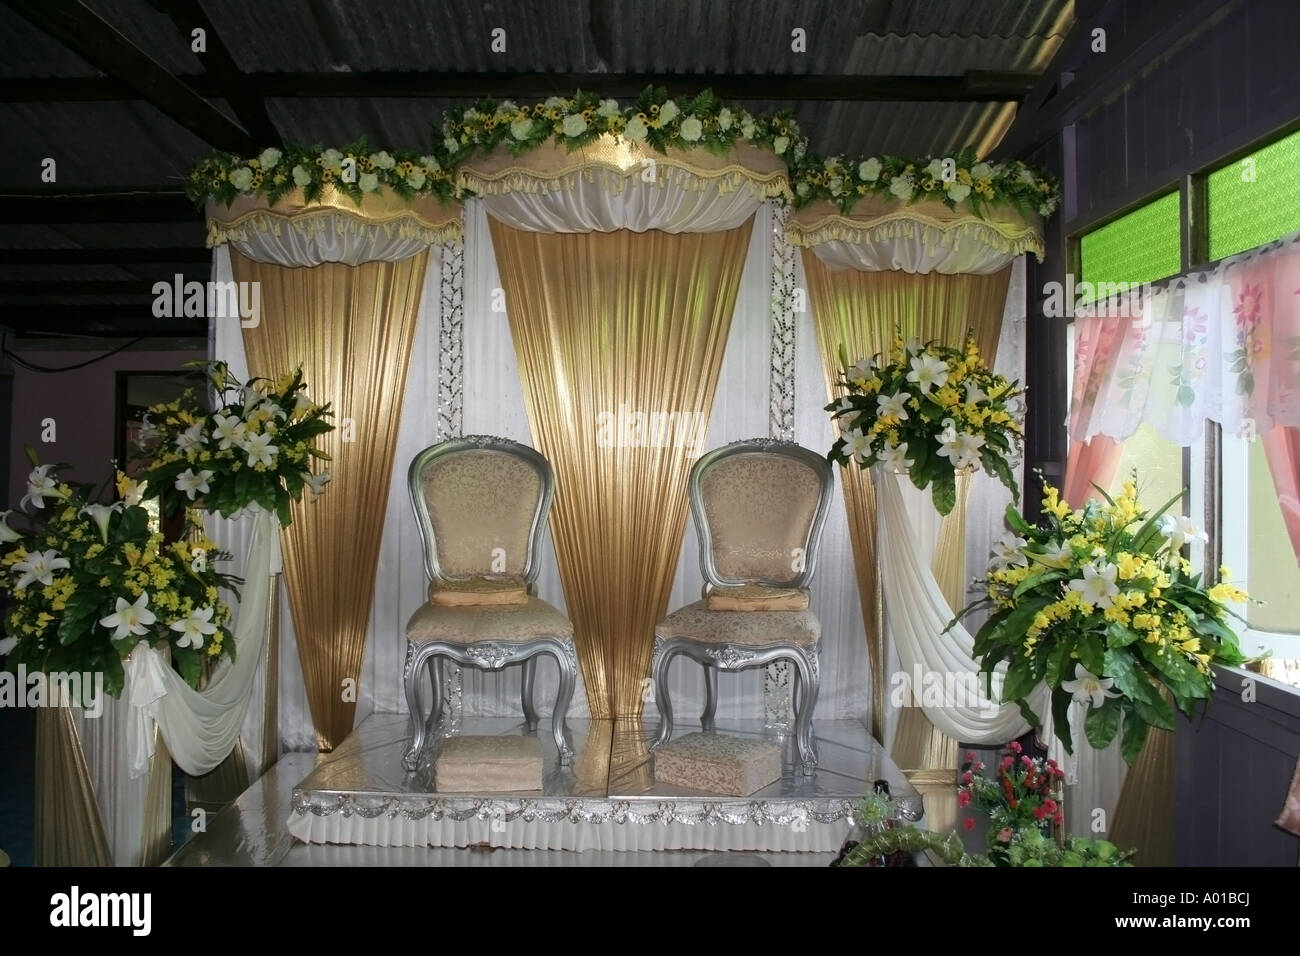 Dais for traditional malay wedding in malaysia stock photo 9847745 dais for traditional malay wedding in malaysia junglespirit Image collections